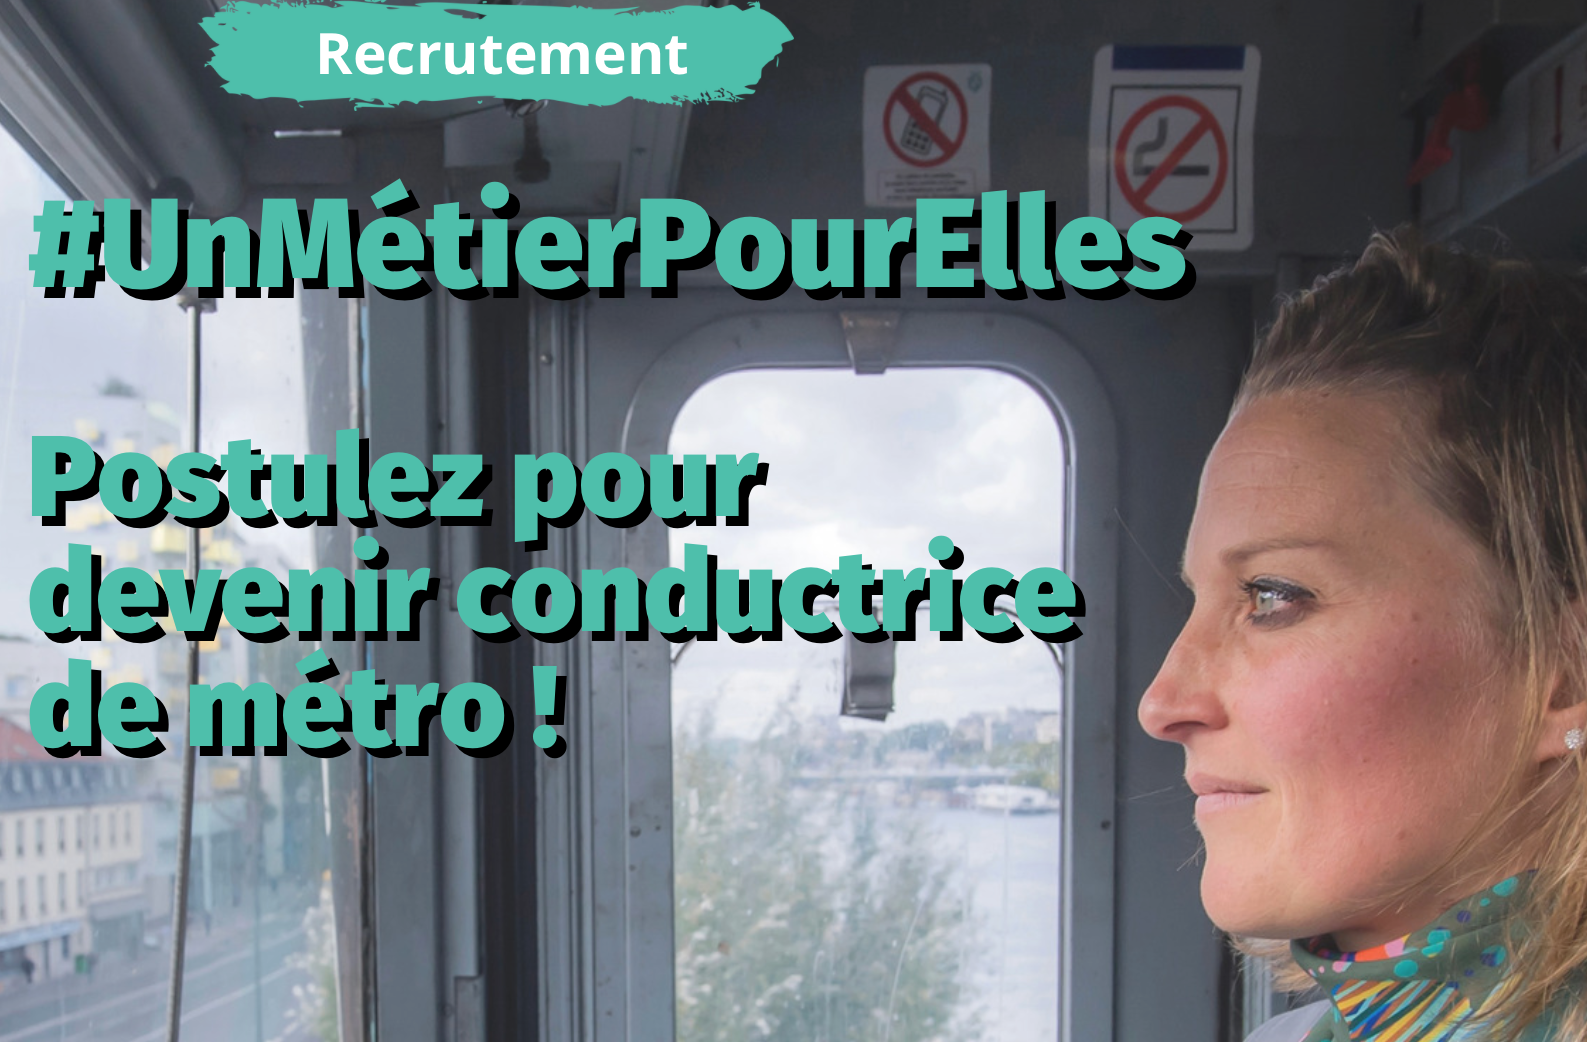 conductrice de métro